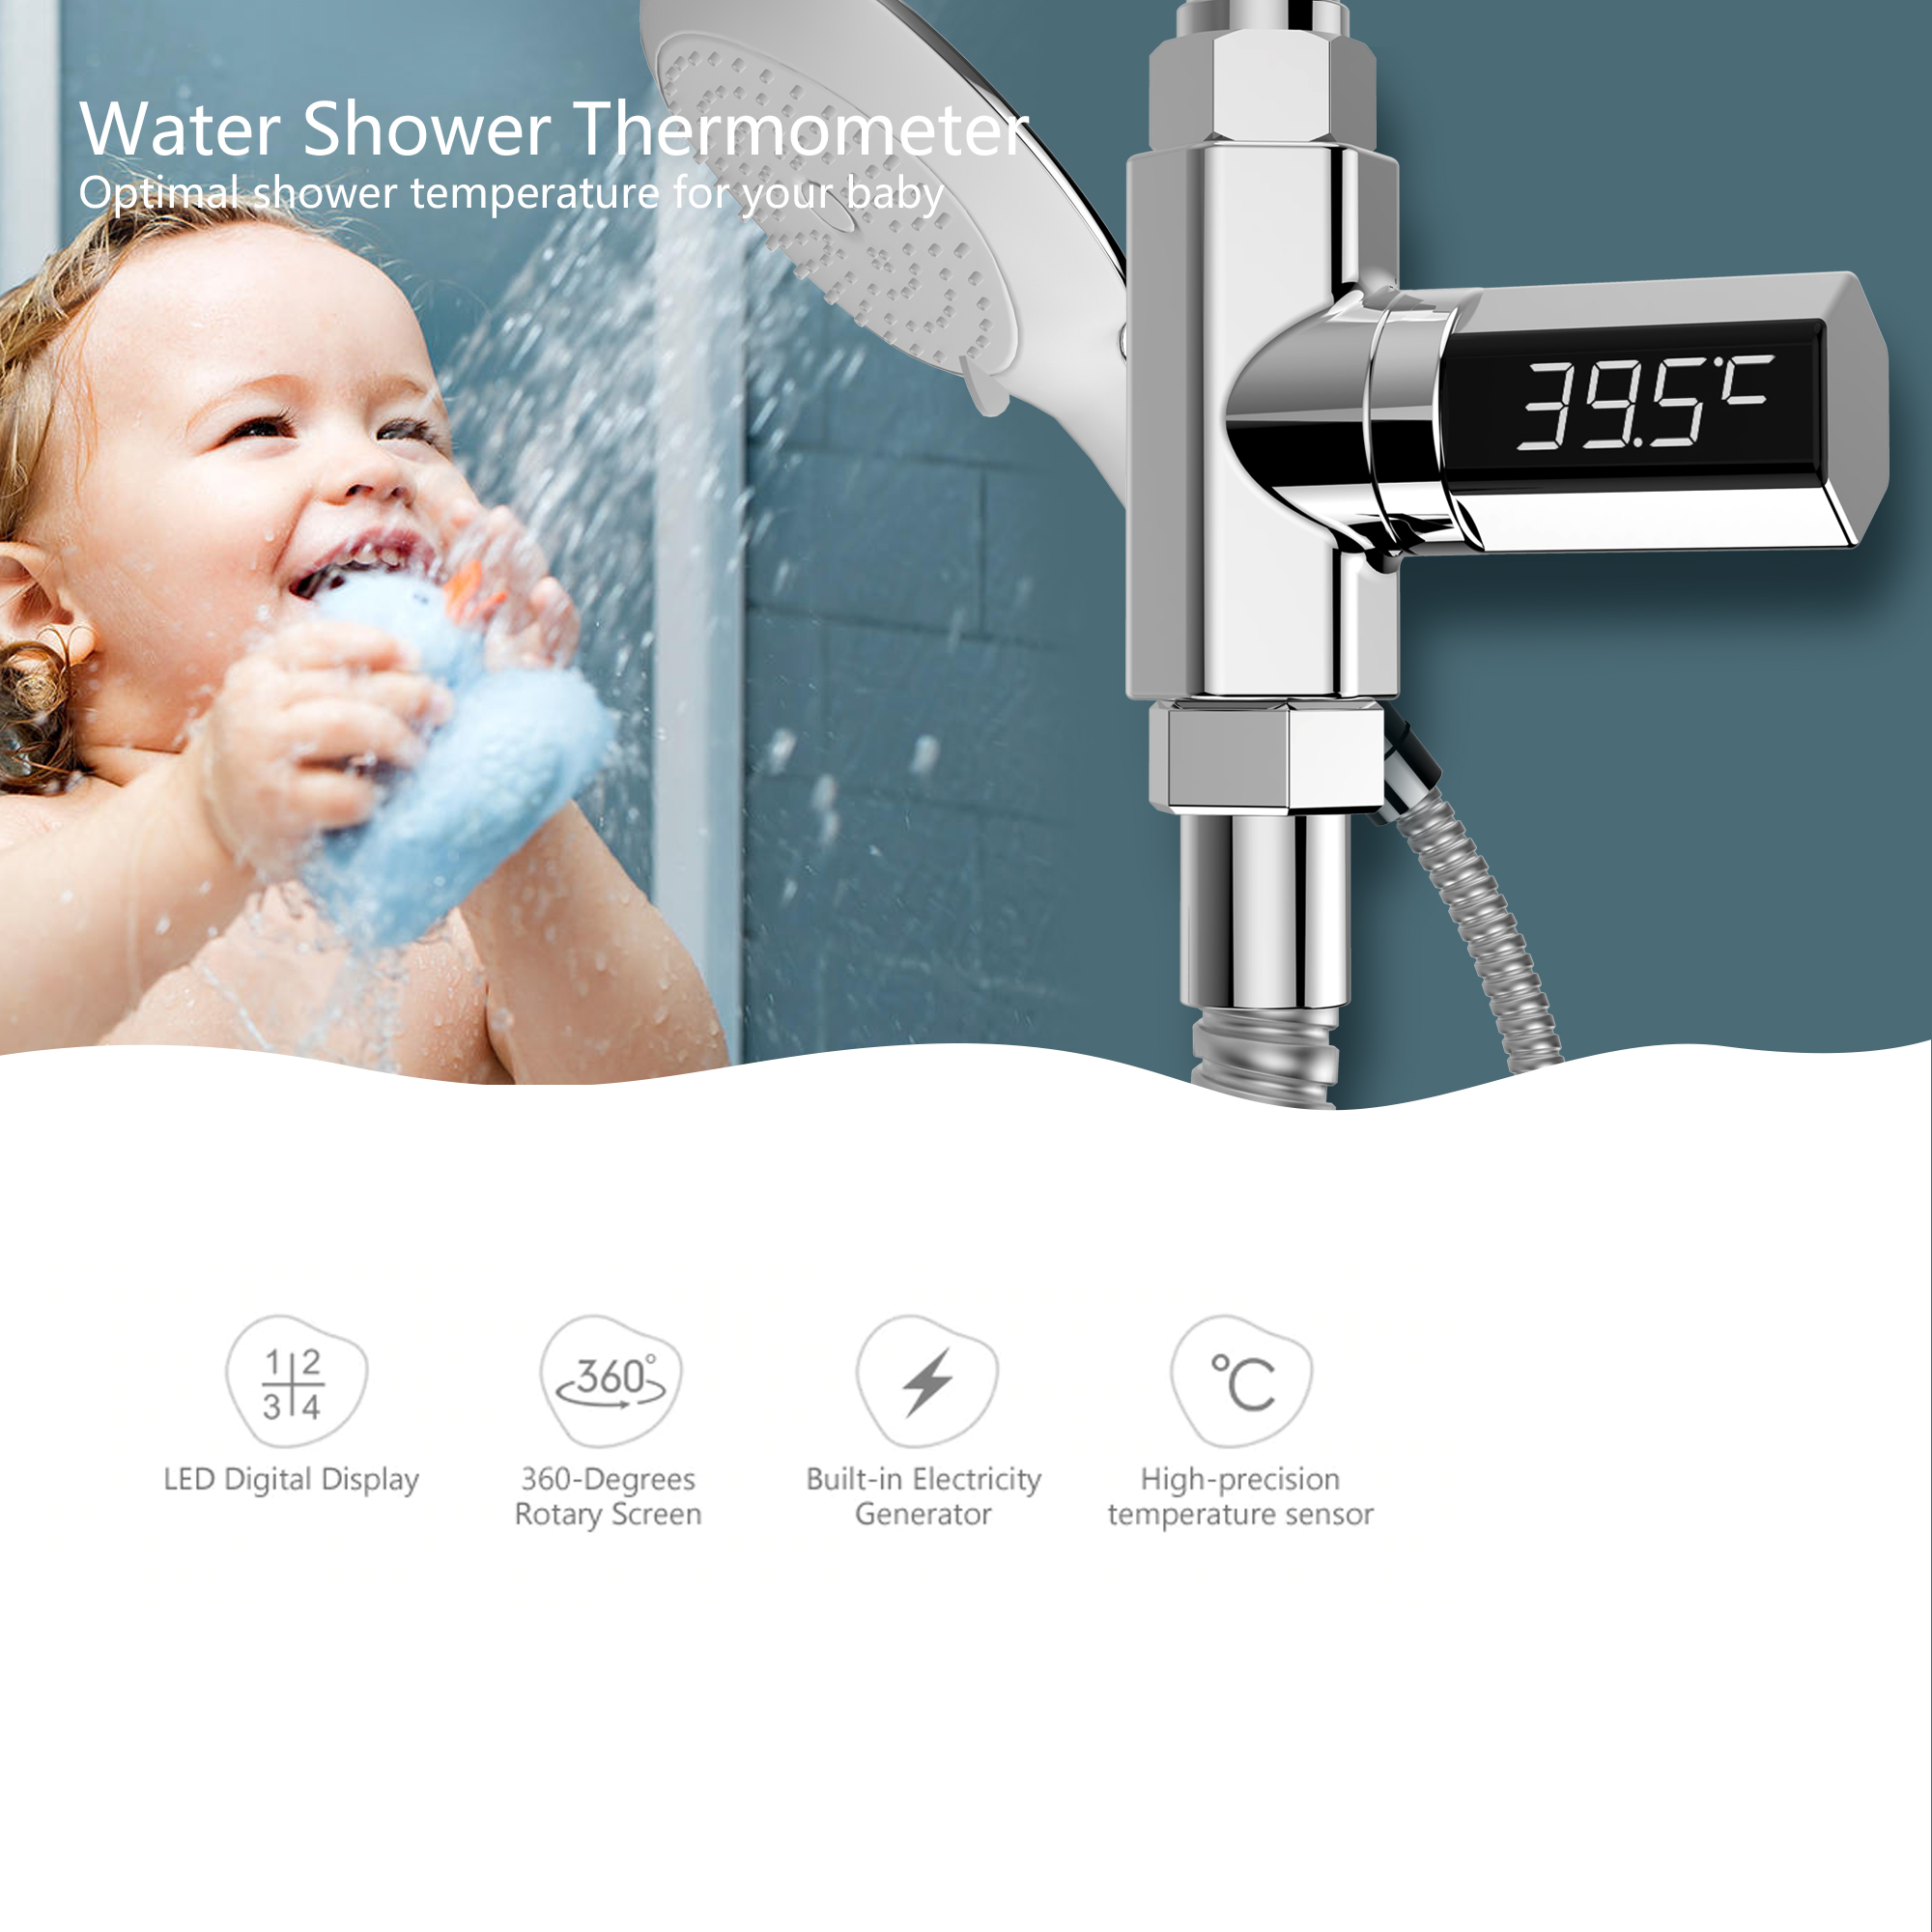 Loskii LW-102 LED Celsius Display Water Shower Thermometer Celsius Flow Self-Generating Electricity Water Temperture Meter Monitor Energy Smart Meter